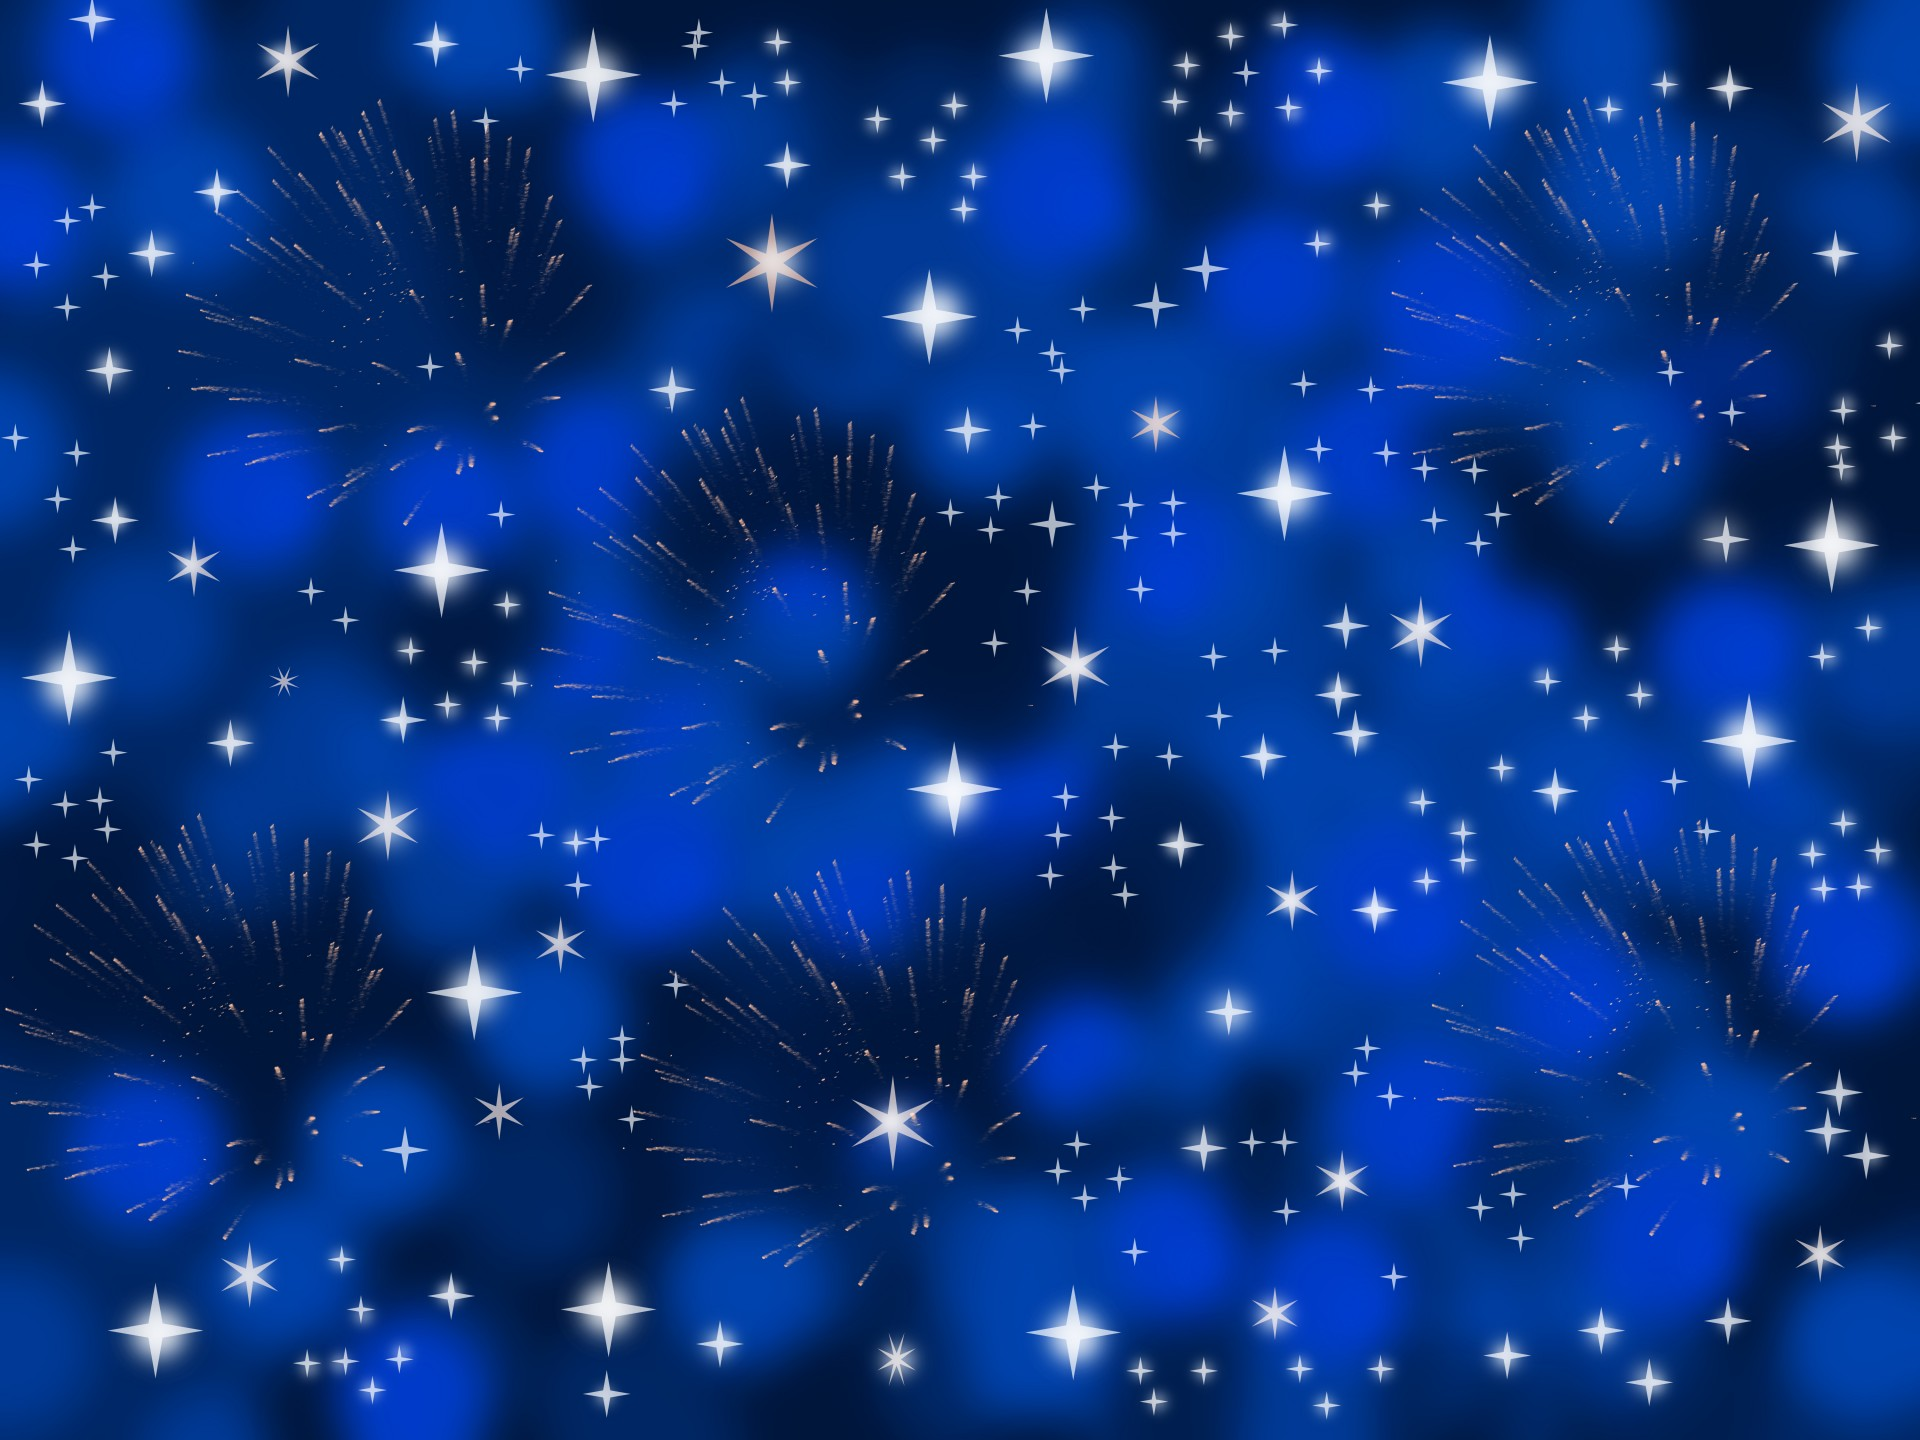 Christmas Falling Snow Wallpaper Note 3 Blue Background With Stars Free Stock Photo Public